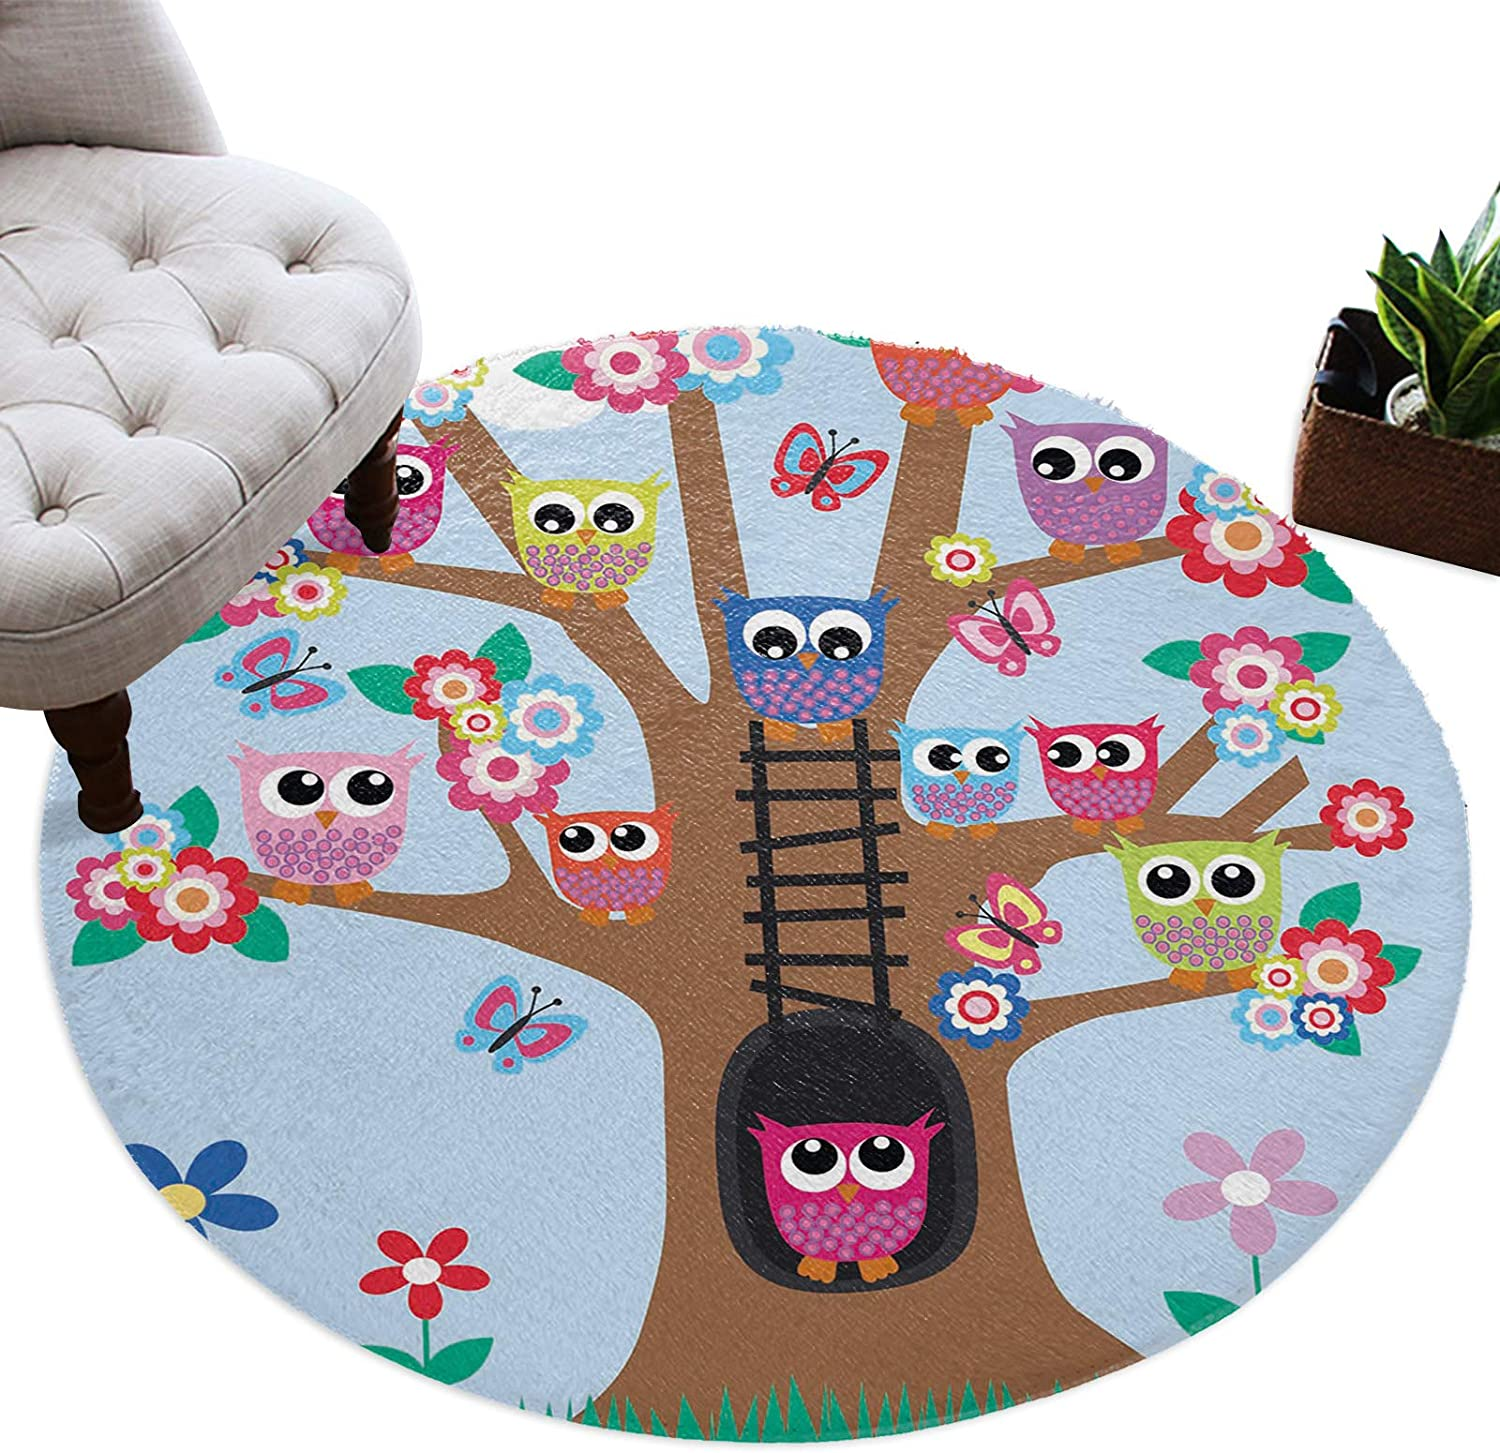 Soft Fluffy Bedroom Rugs - 3.3 Indoor Feet Area Shaggy Rug Discount mail order Plush Japan's largest assortment